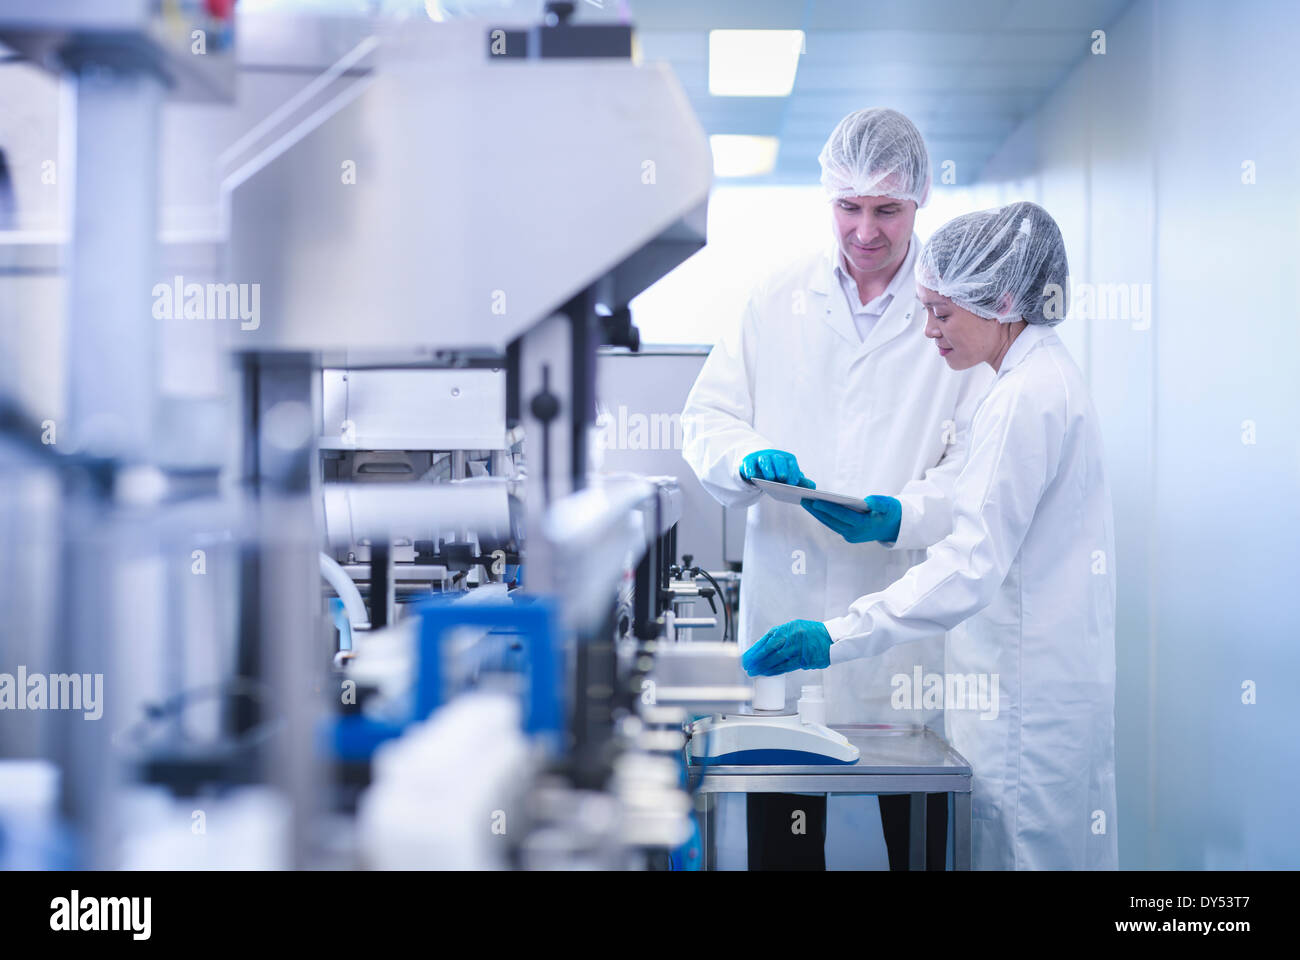 Workers inspecting product in pharmaceutical factory - Stock Image